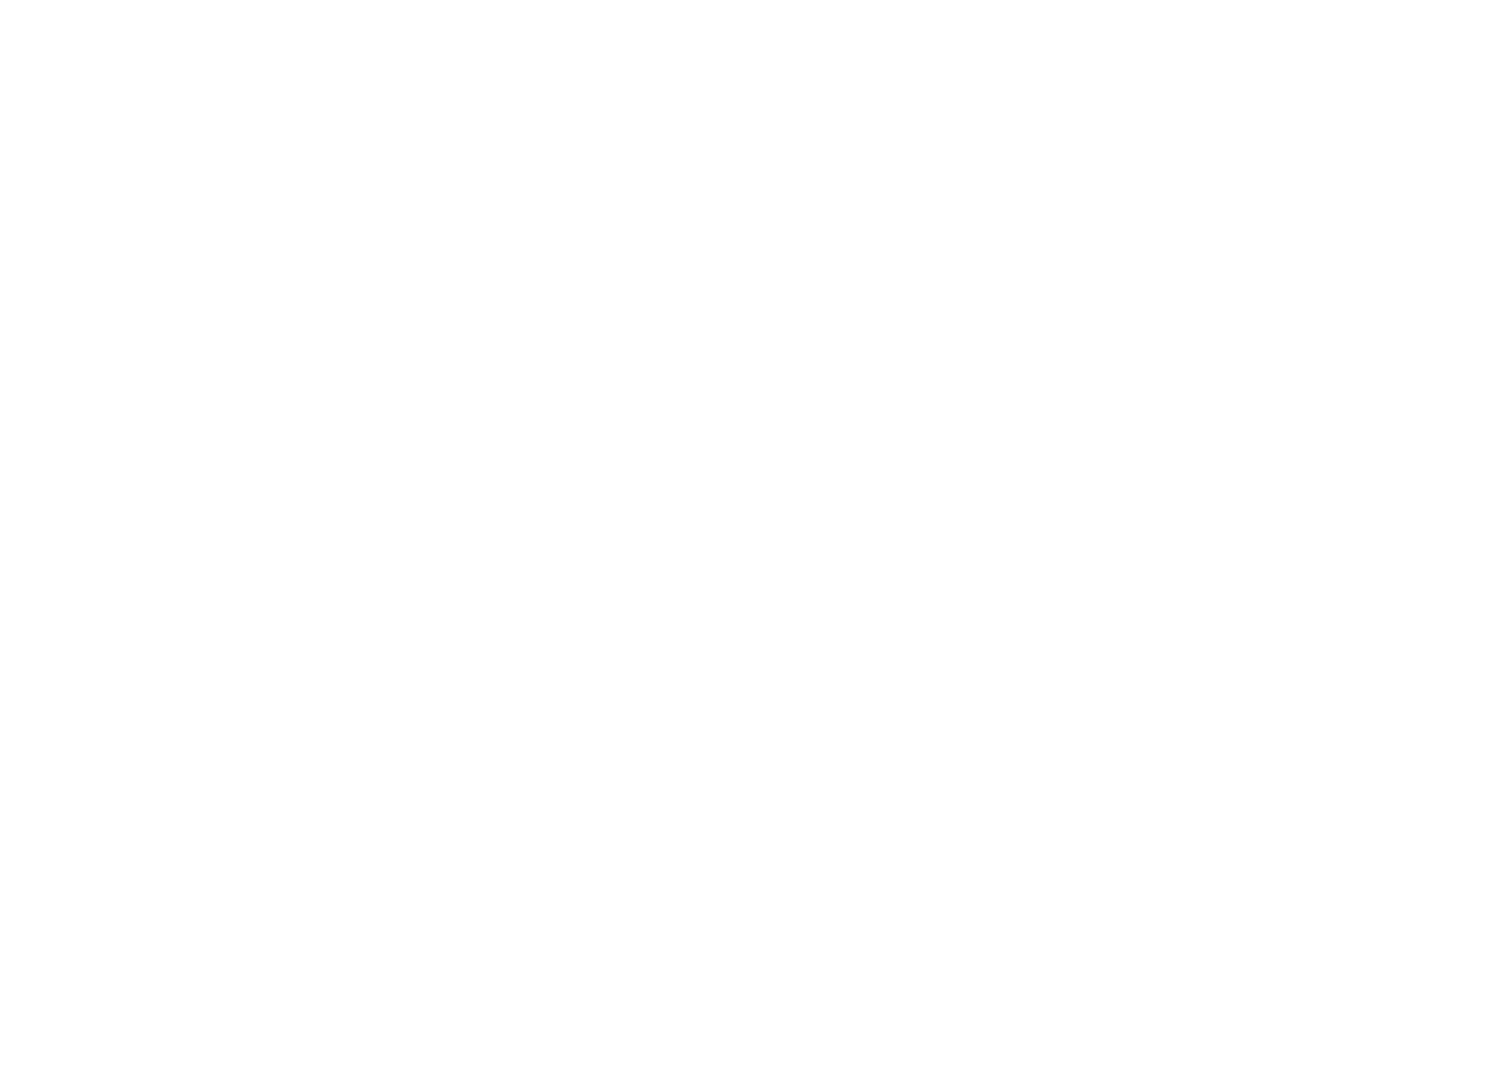 doloop digital